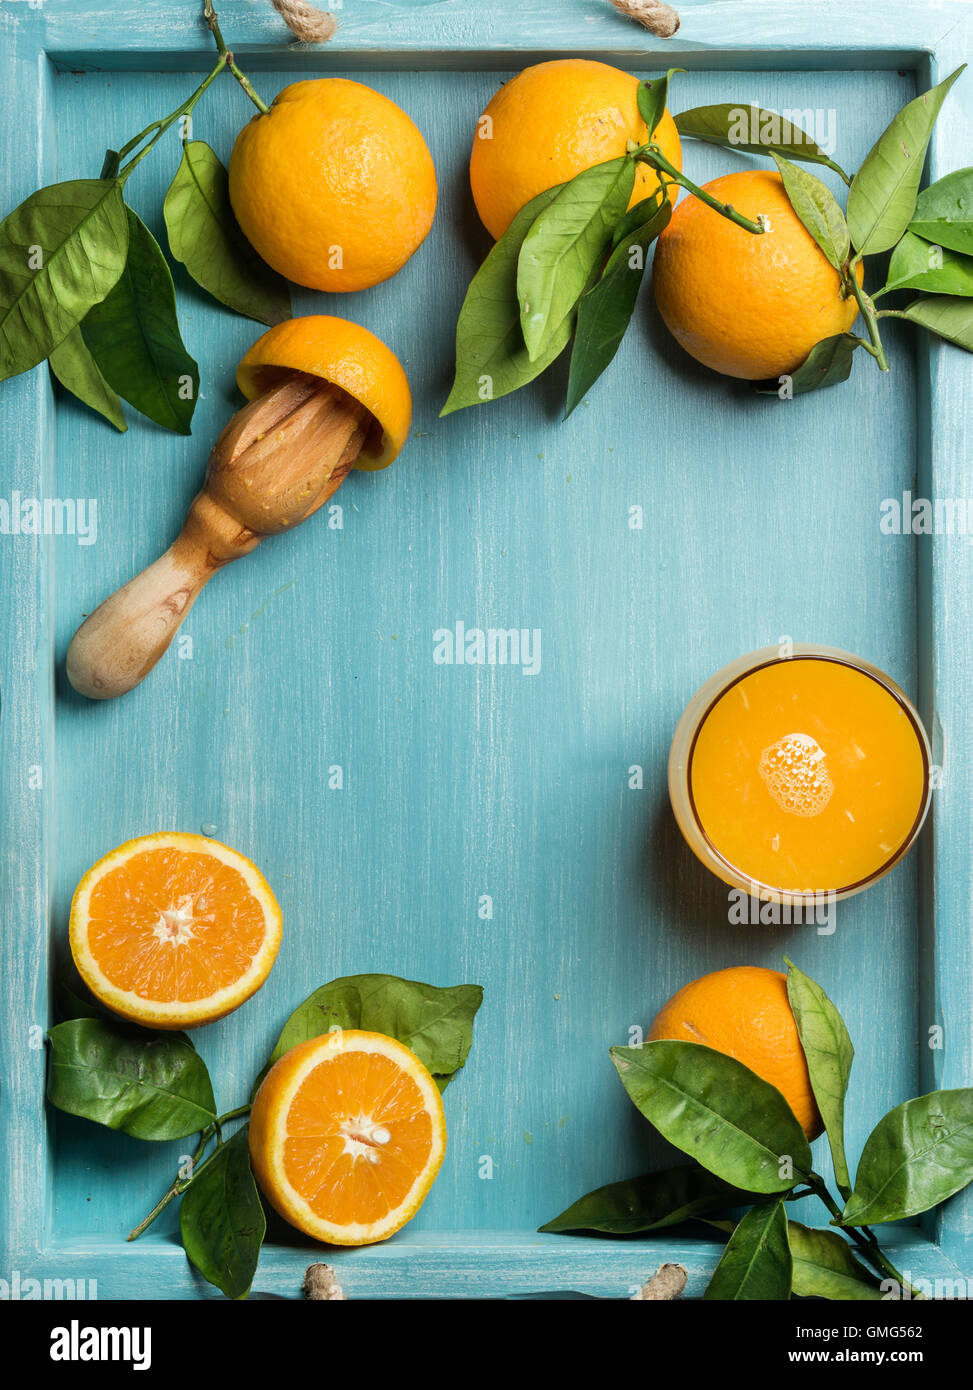 Fresh orange juice in glass and oranges with leaves on wooden turquoise blue painted background - Stock Image